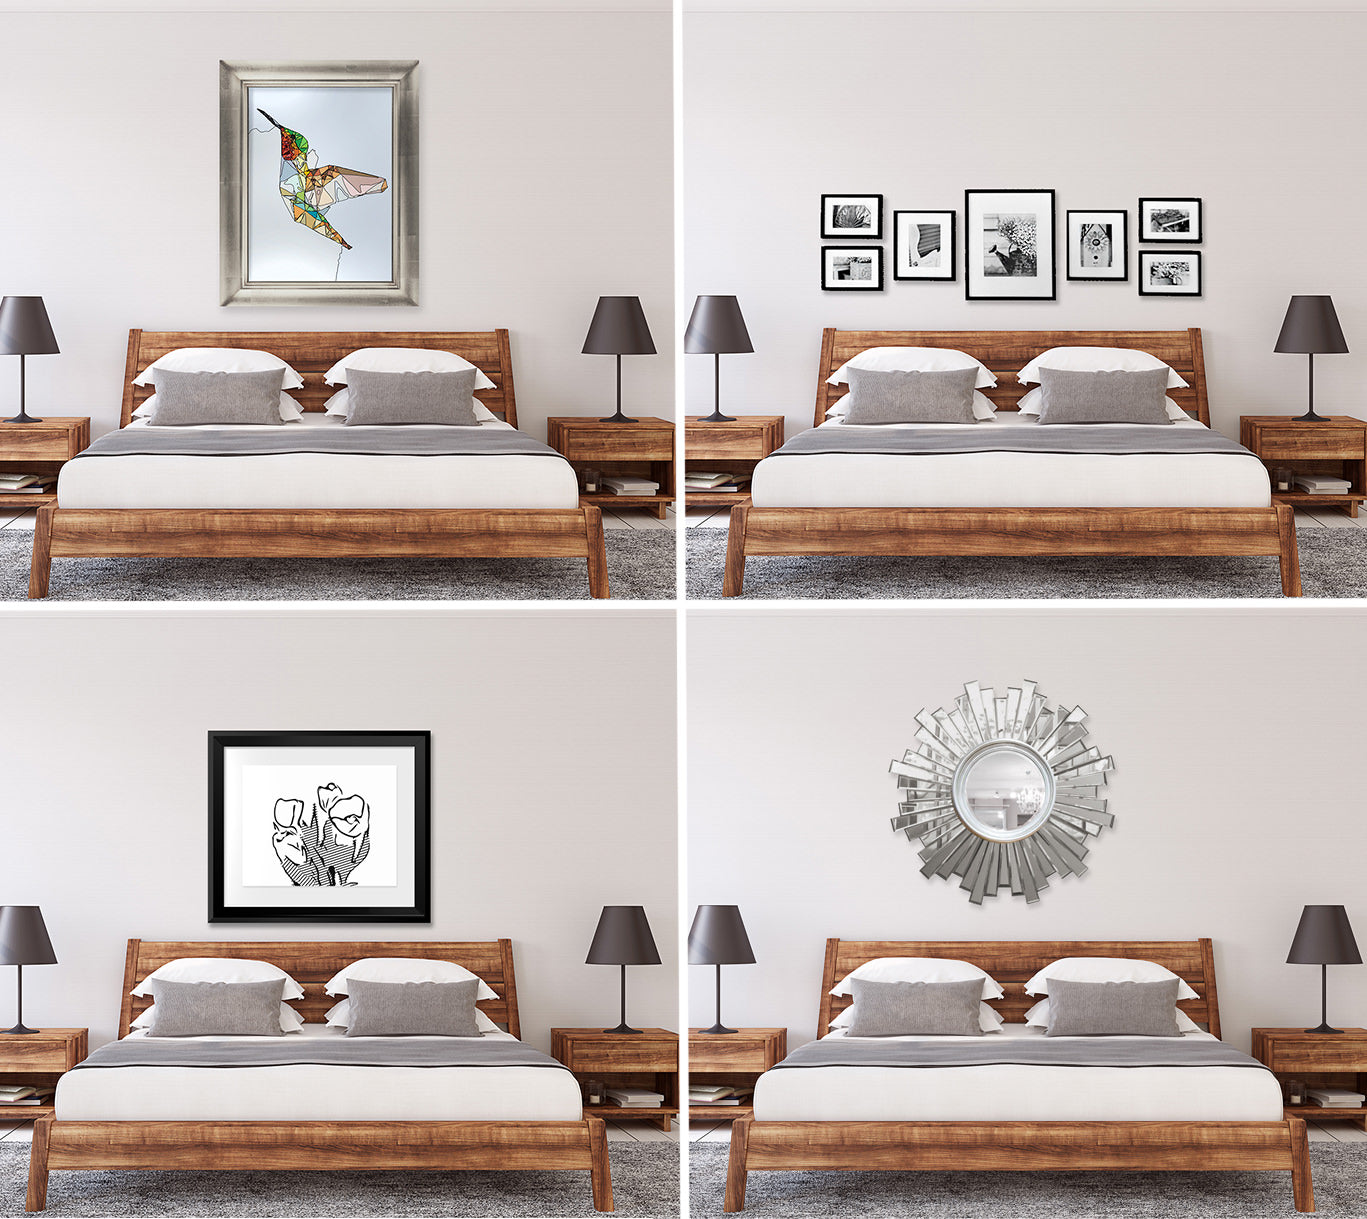 Four different types of arrangement in a bedroom